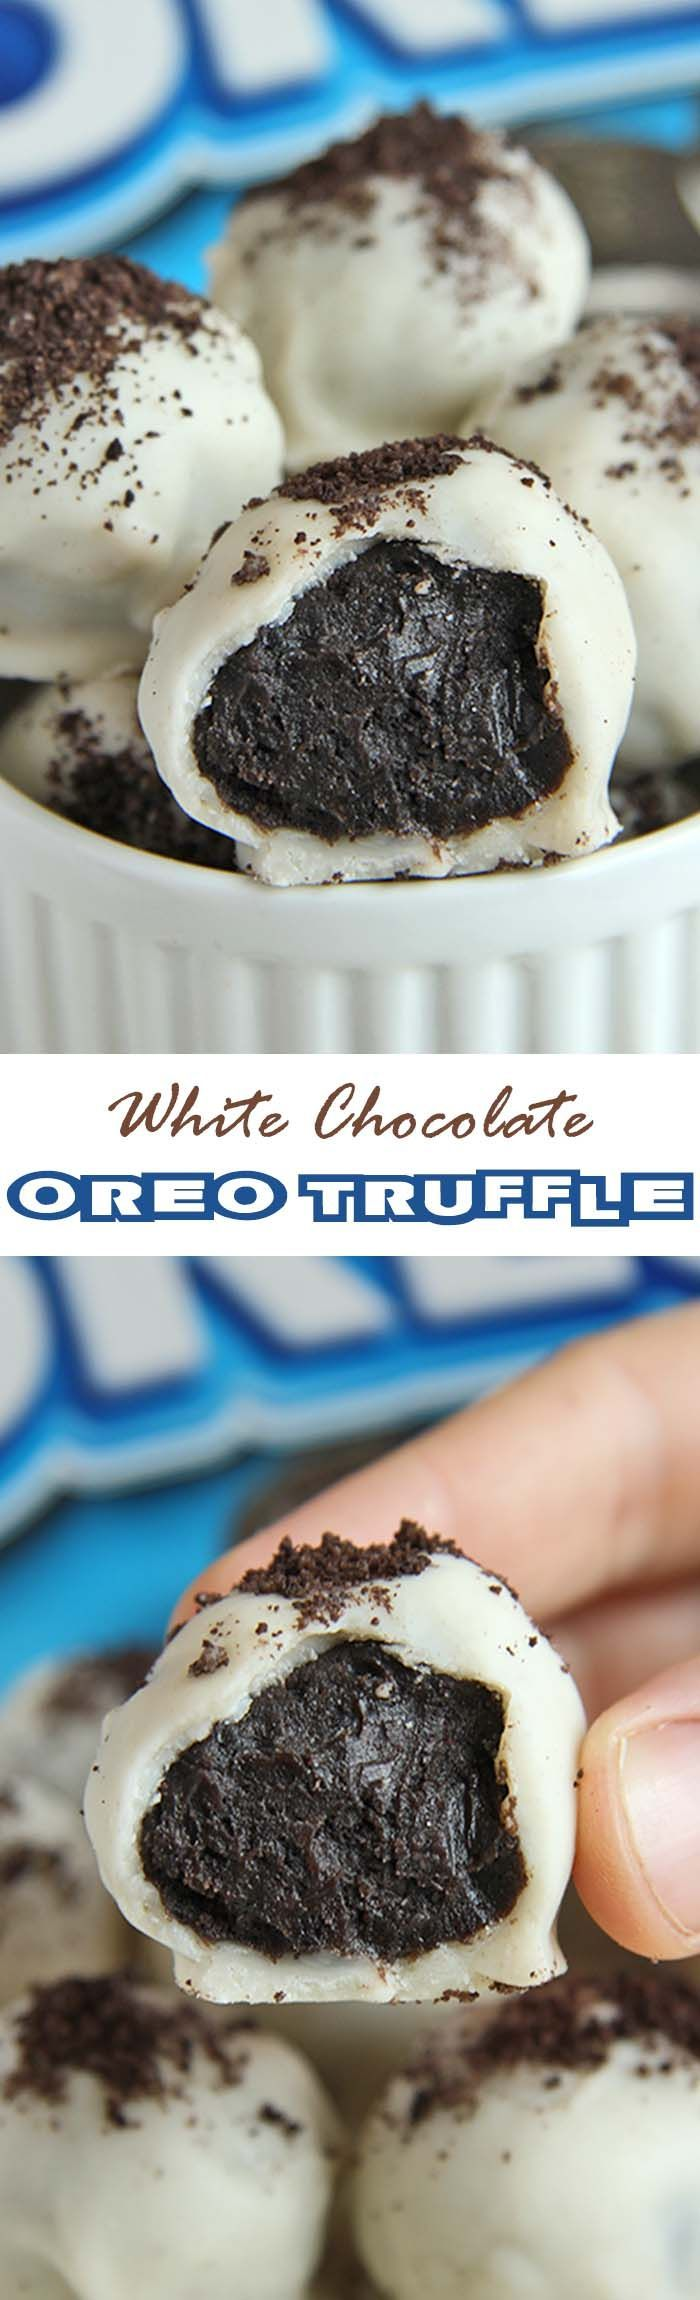 The 25 best oreo cake pops ideas on pinterest oreo cake for White chocolate truffles recipe uk